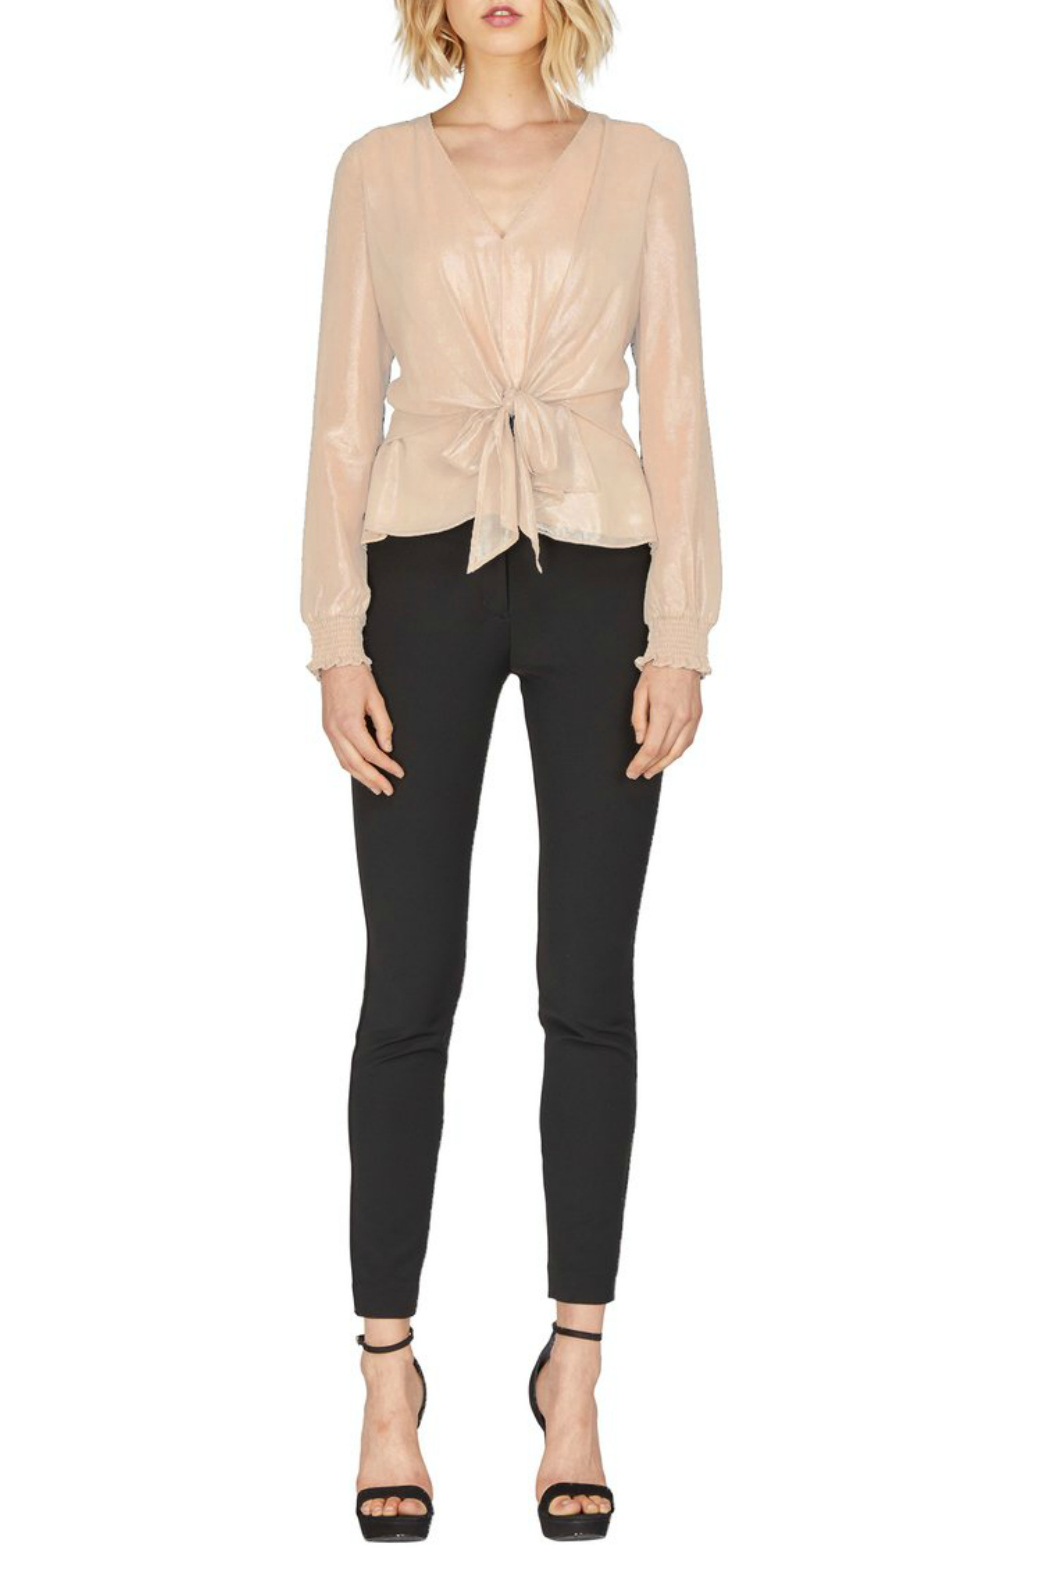 Adelyn Rae Bobbi Champagne Bow Tie Blouse - Front Cropped Image